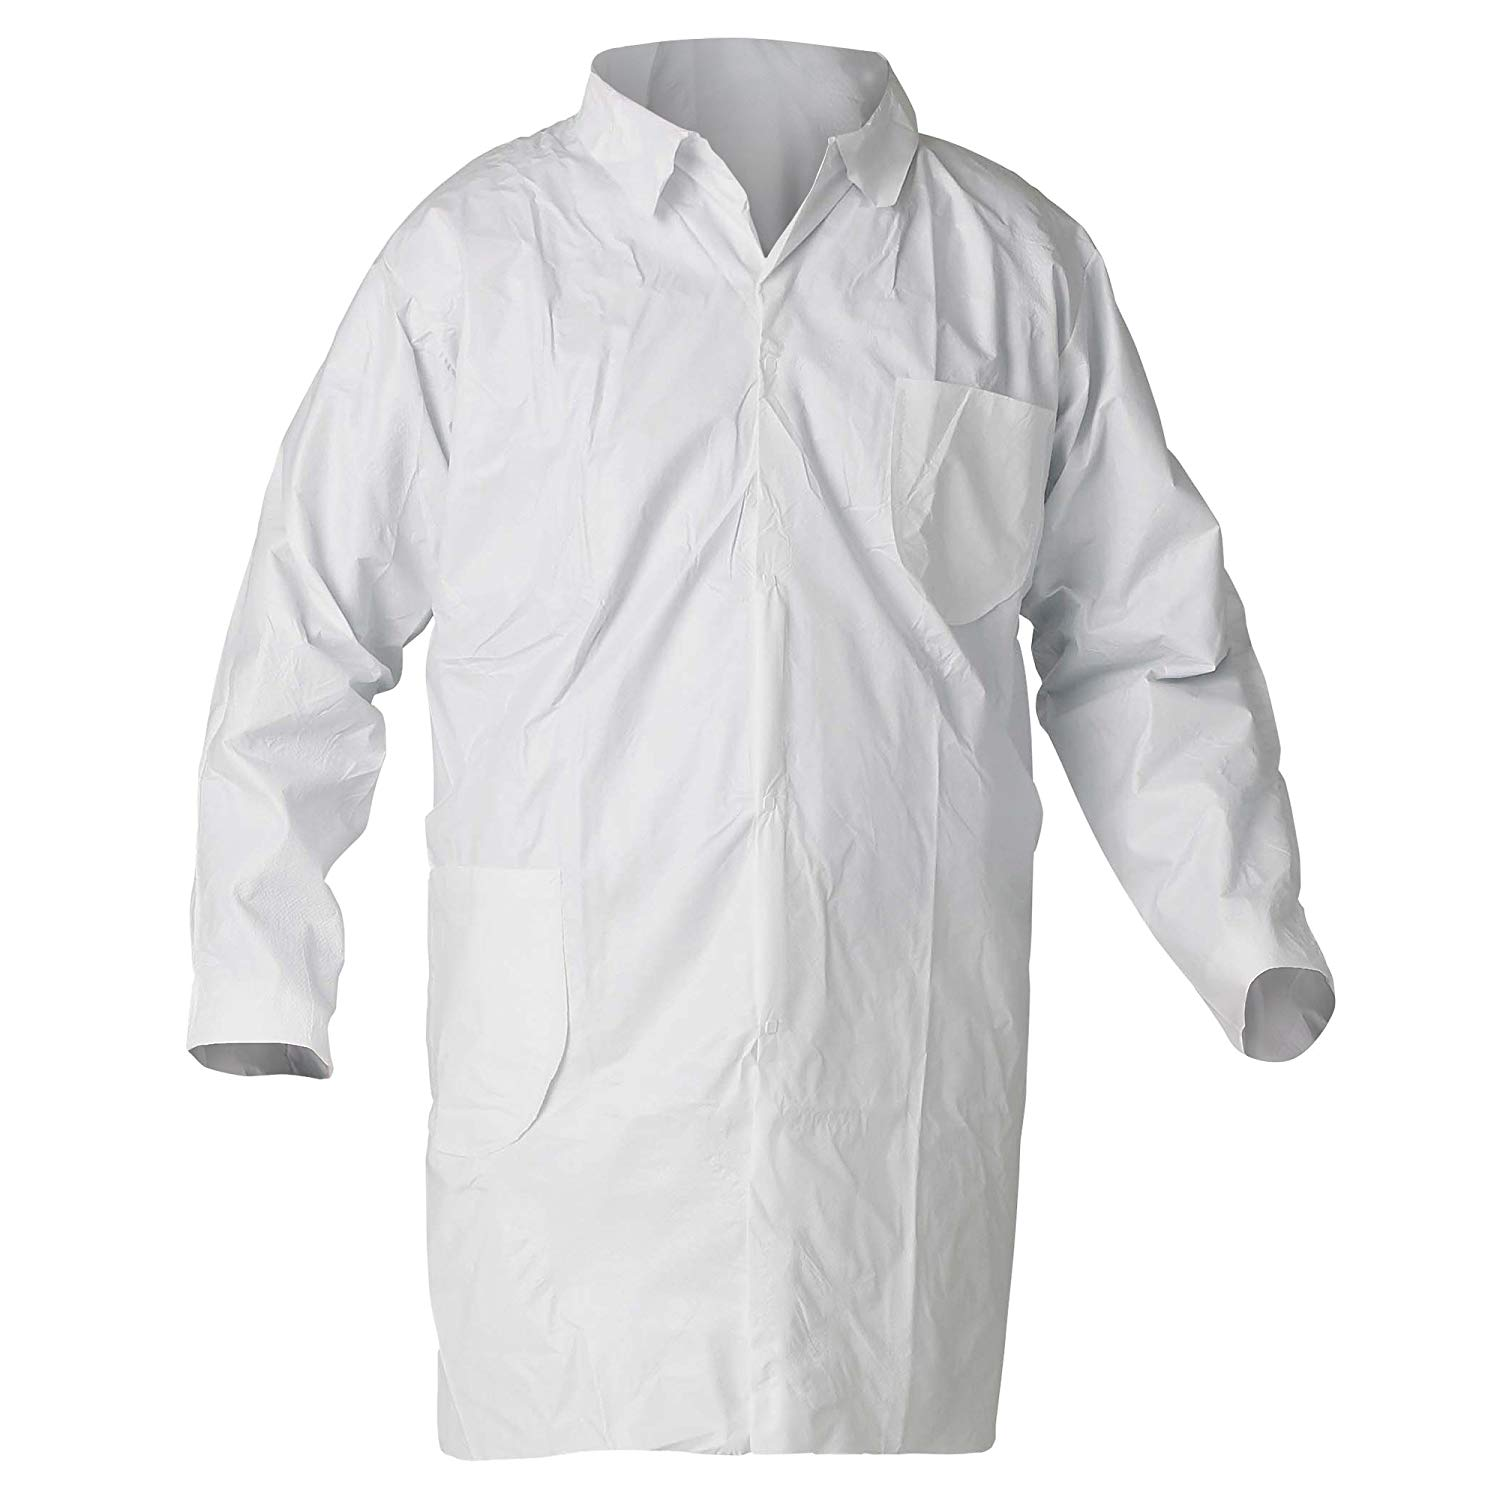 Kleenguard A40 Liquid & Particle Protection Lab Coats (44455), 4-Snap Closure, Knee Length, Open Wrists, White, 2XL, 30/Case